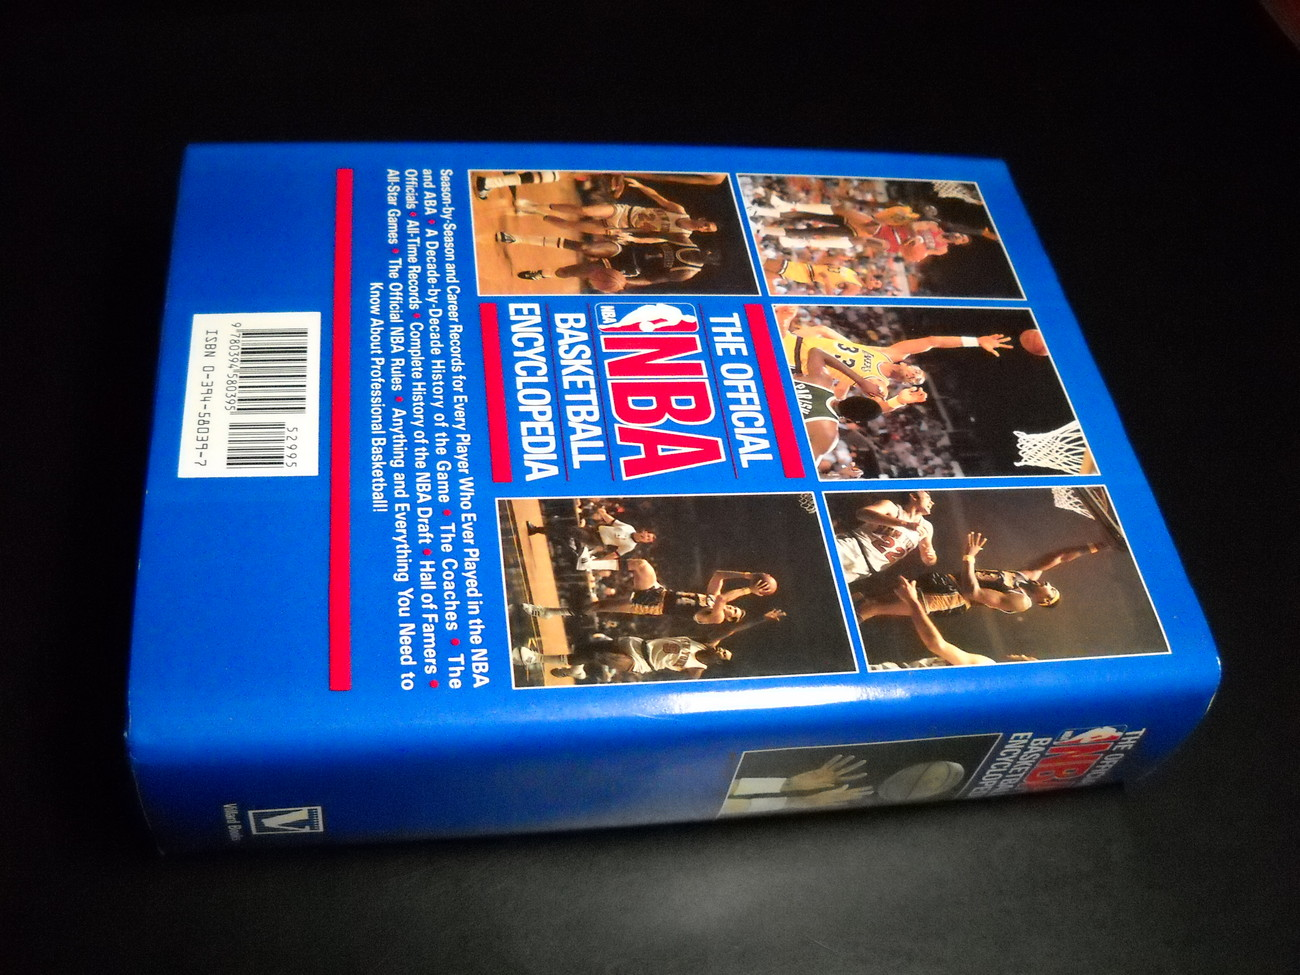 The Official NBA Basketball Encyclopedia 1989 Complements of Cleveland Cavaliers